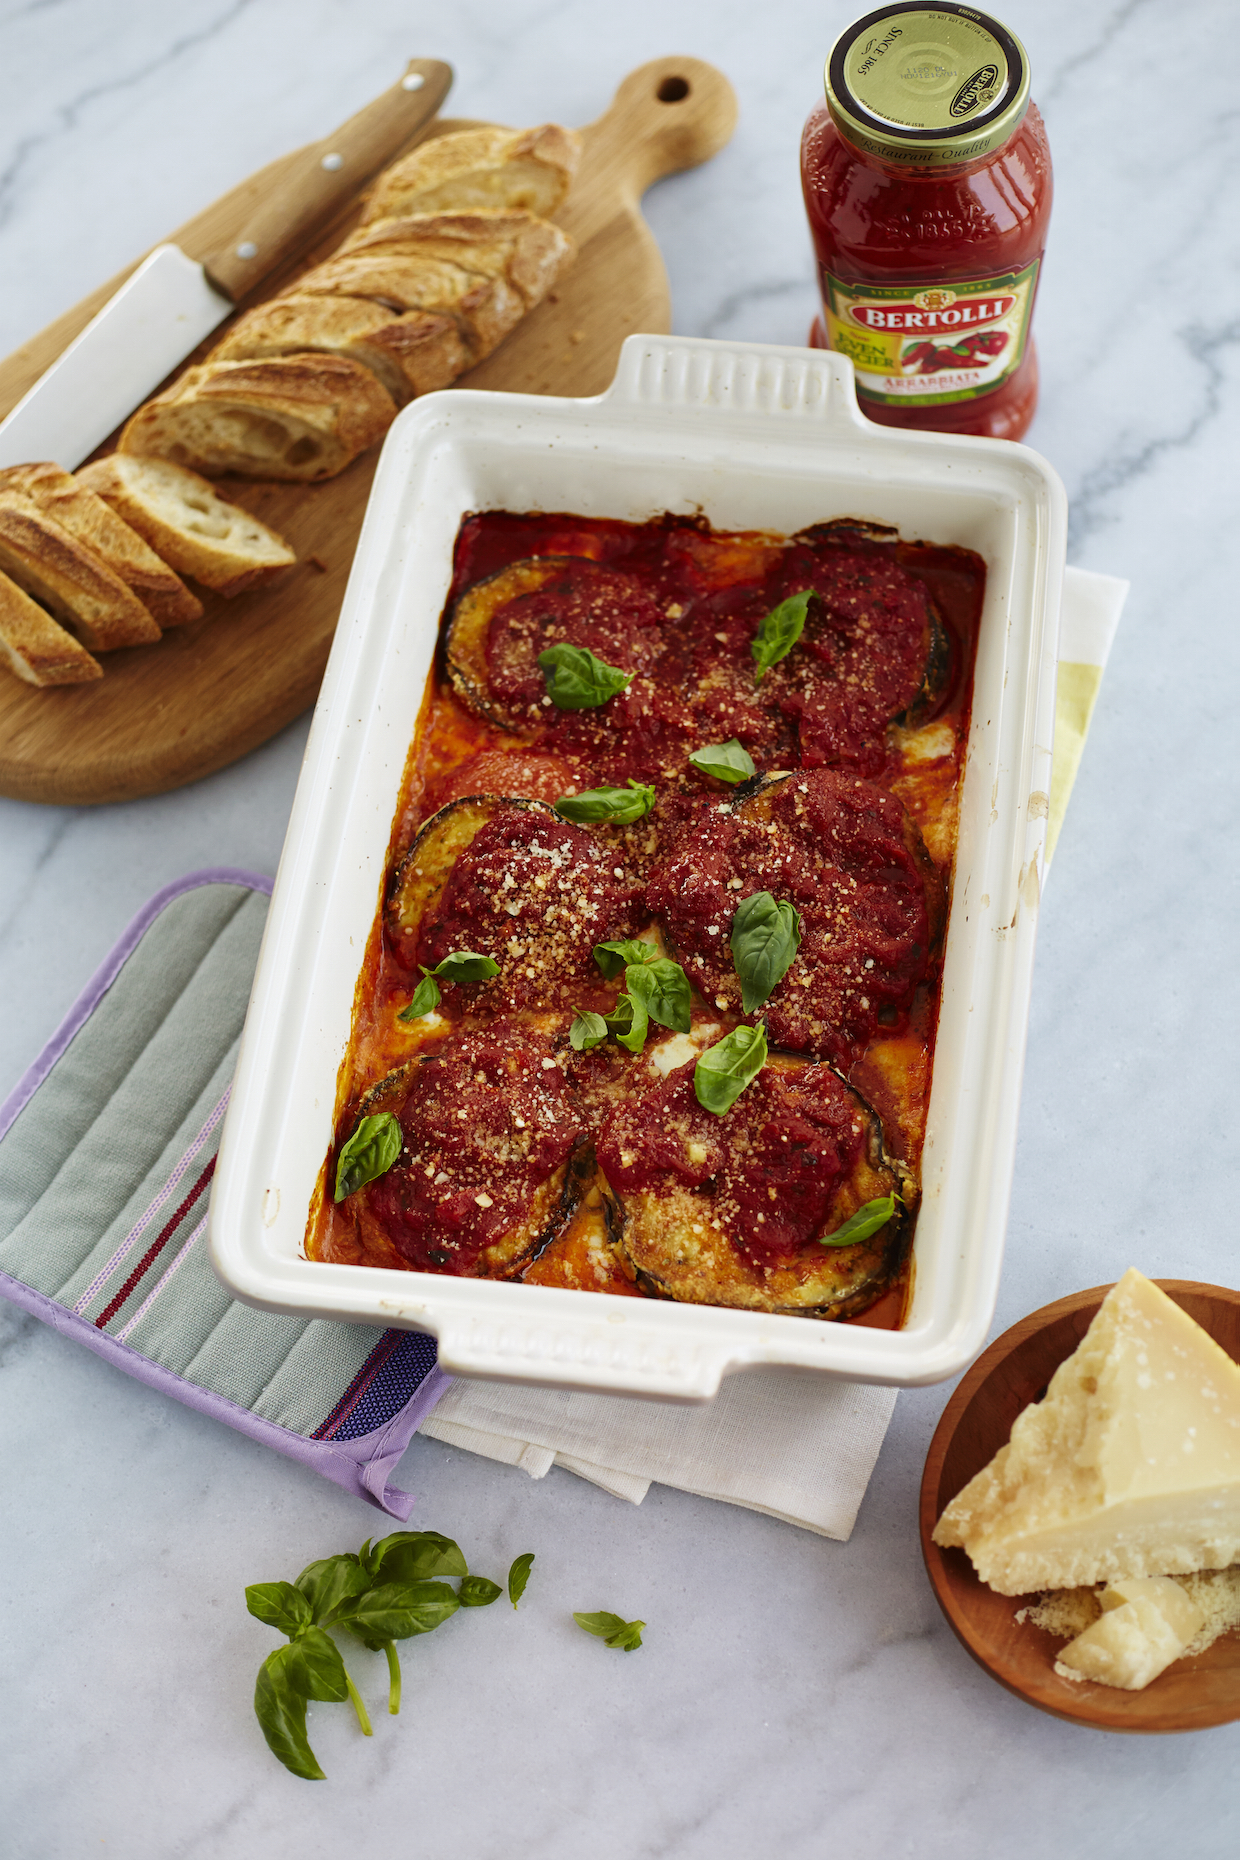 The Ultimate Eggplant Parmesan: Our Dinner Party with Bertolli — The ...